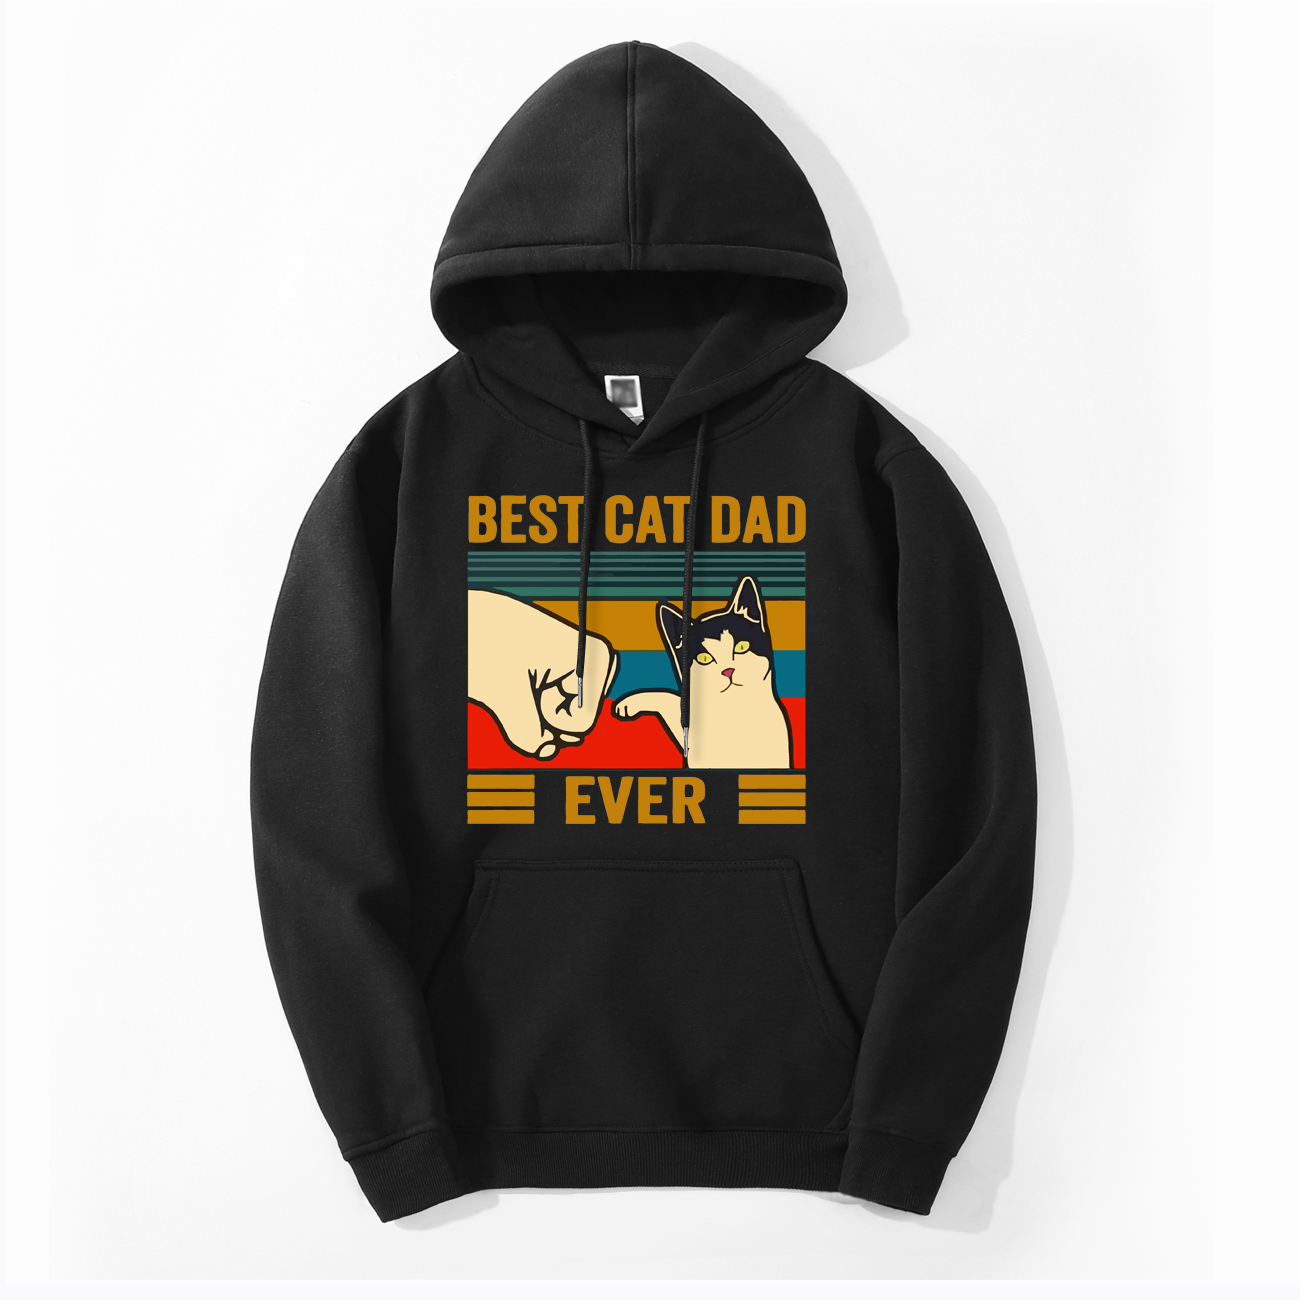 Funny Print Best Cat Dad Ever Hoodies Men Casual Hooded New Style Fashion Pullover Fitness Sportswear Loose Animal Cats Hoody